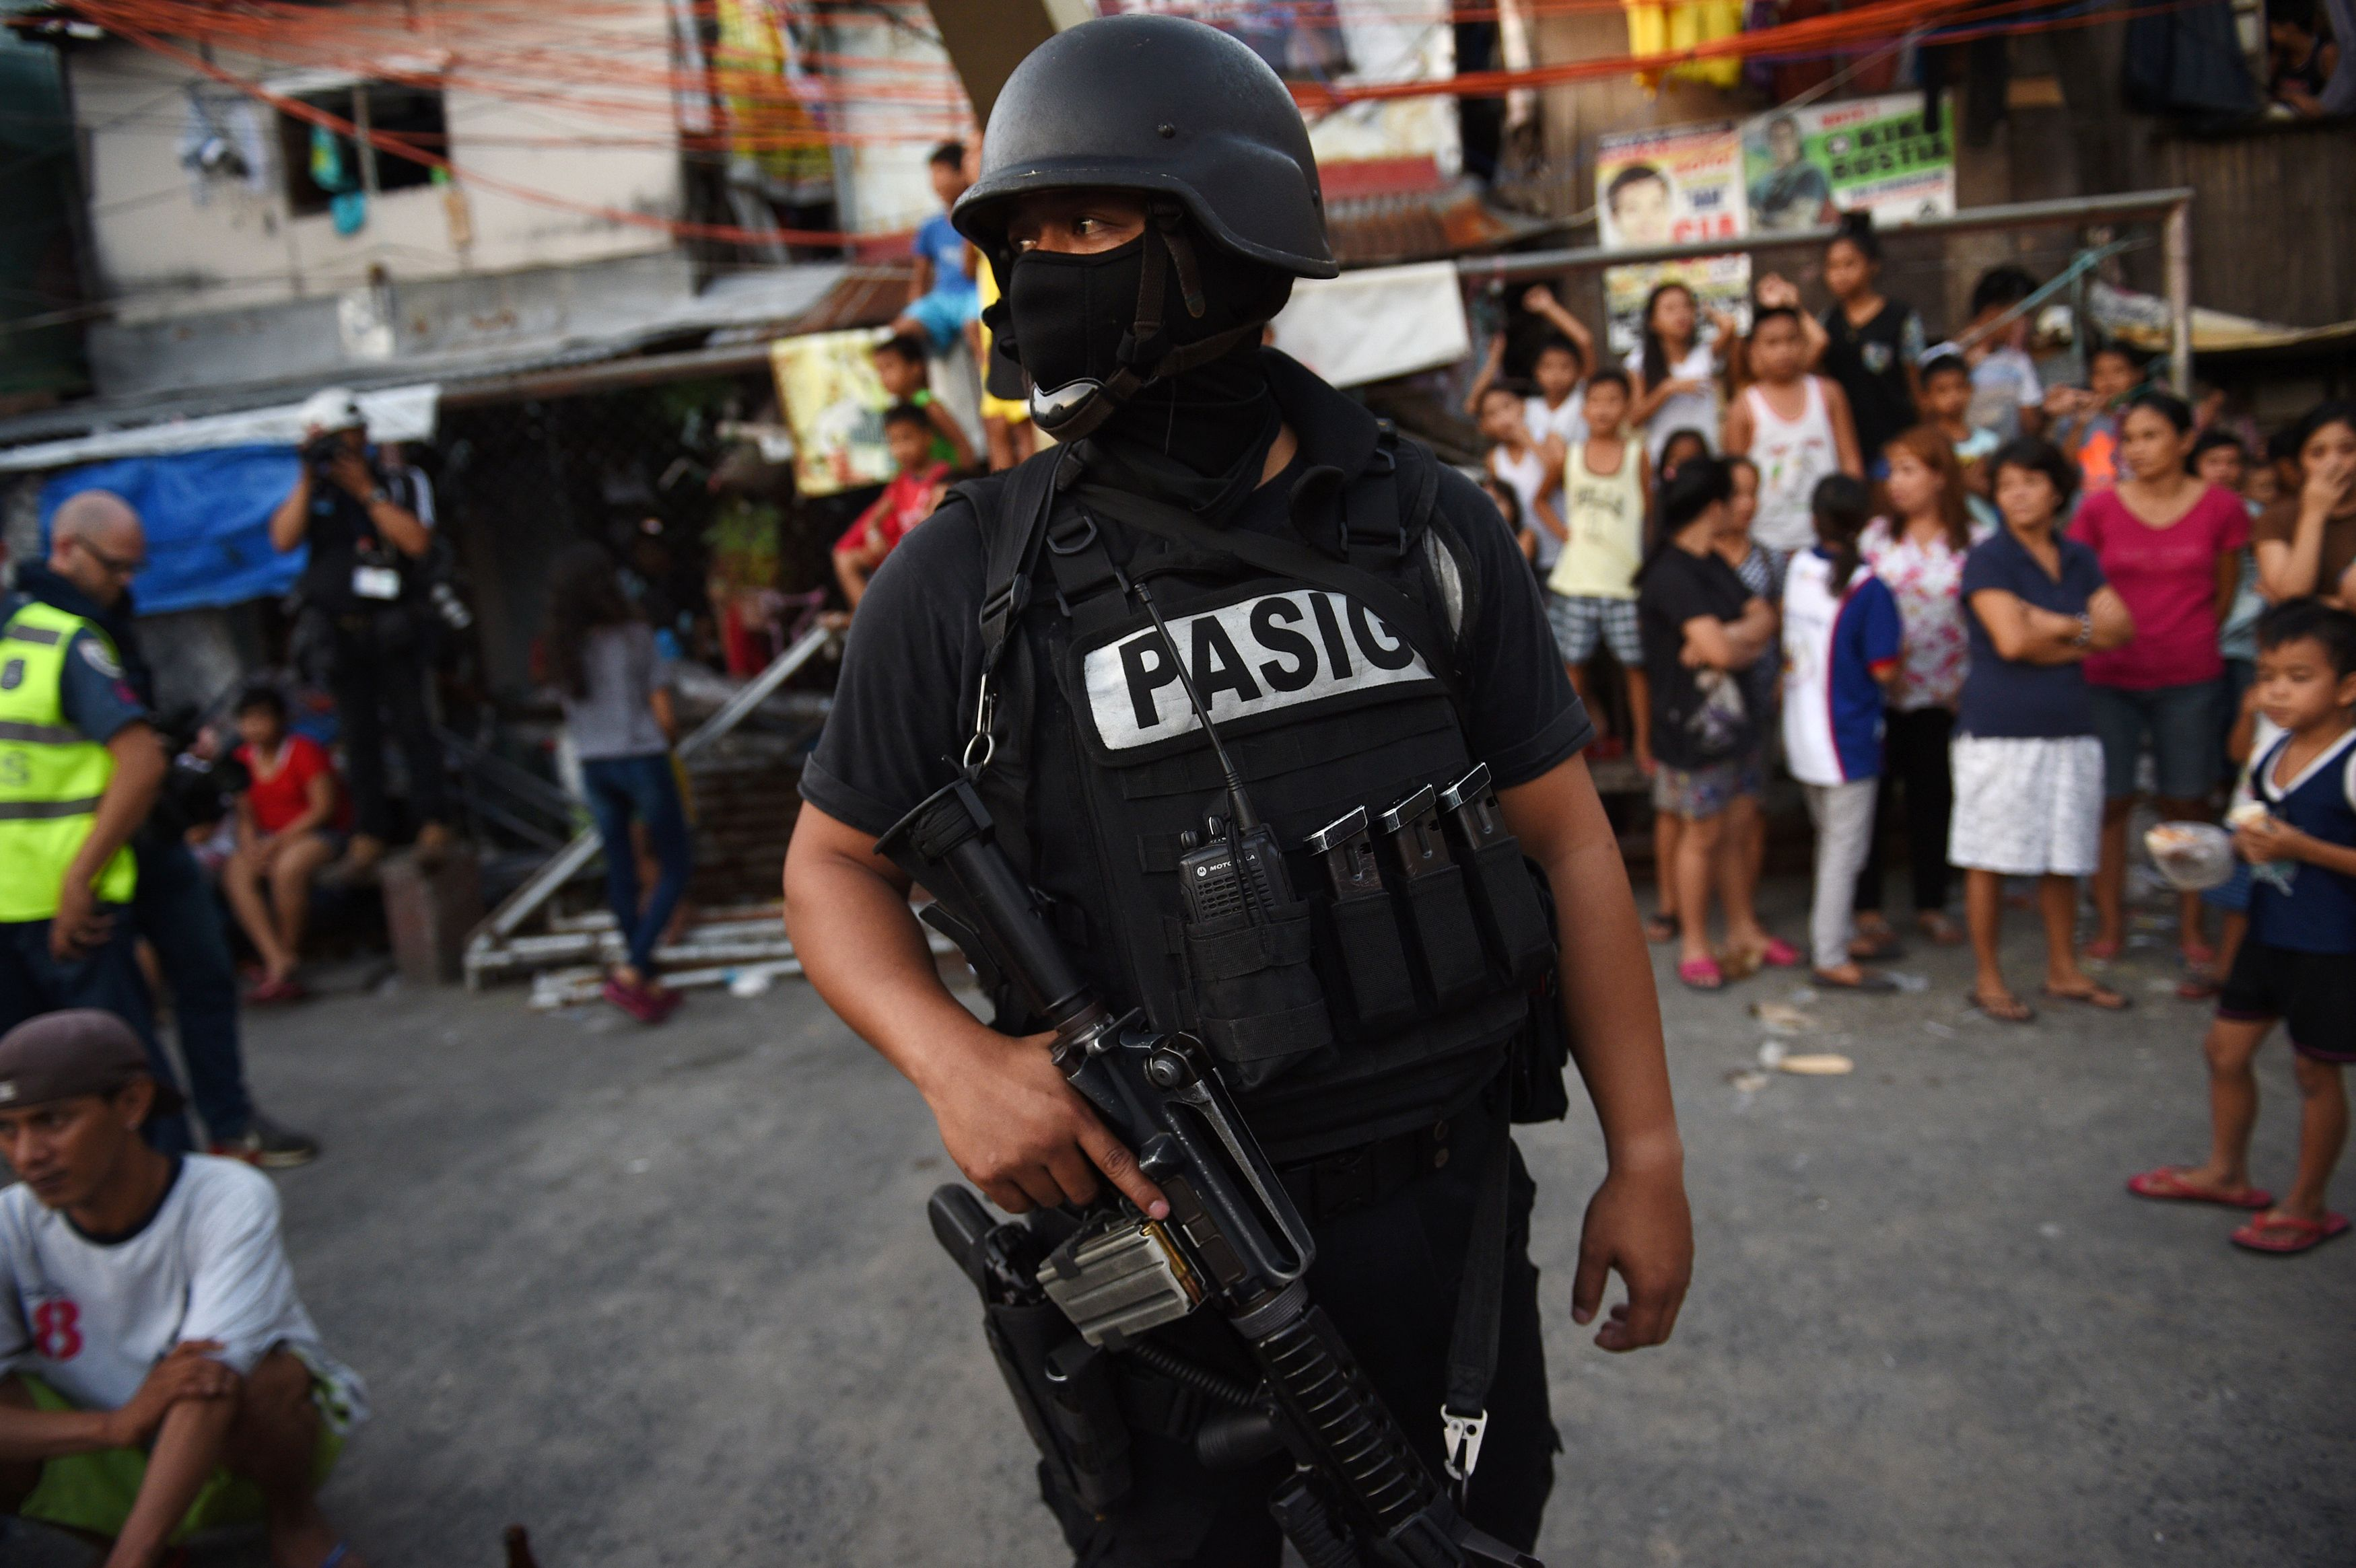 A member of the Special Weapons and Tactics (SWAT) team stands guard while residents look on during an antidrug operation at an informal settlers area in Manila on Nov. 9, 2016. Since President Rodrigo Duterte took office on June 30, his war on drugs and other crimes have claimed more than 4,100 lives, according to official figures